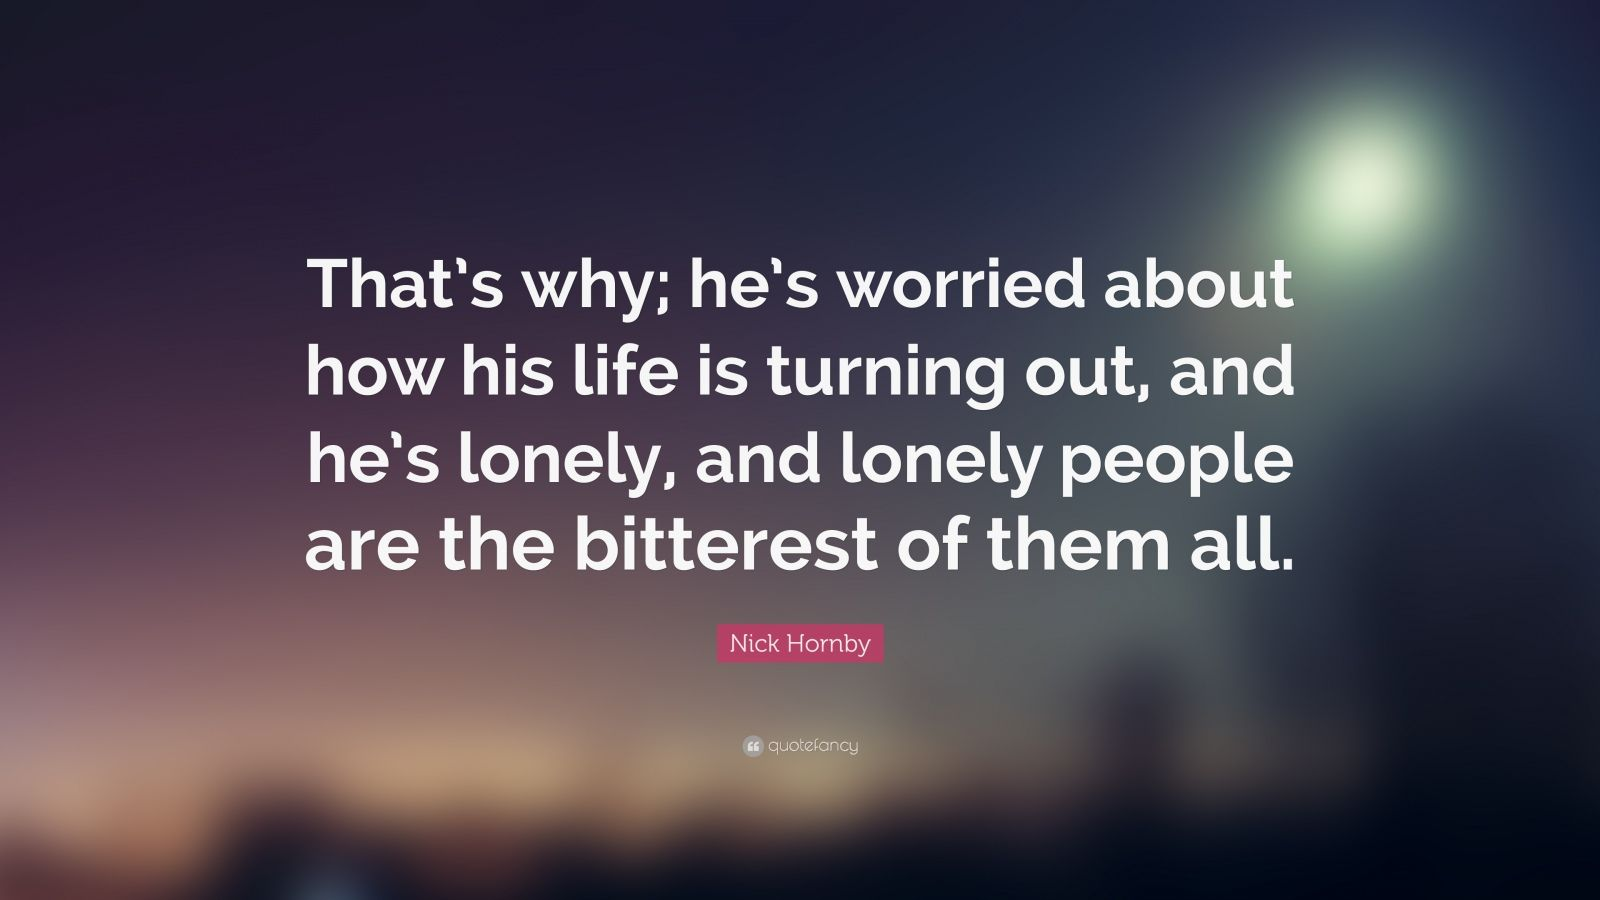 """Nick Hornby Quote: """"That's why; he's worried about how his life is turning out, and he's lonely, and lonely people are the bitterest of them all."""""""